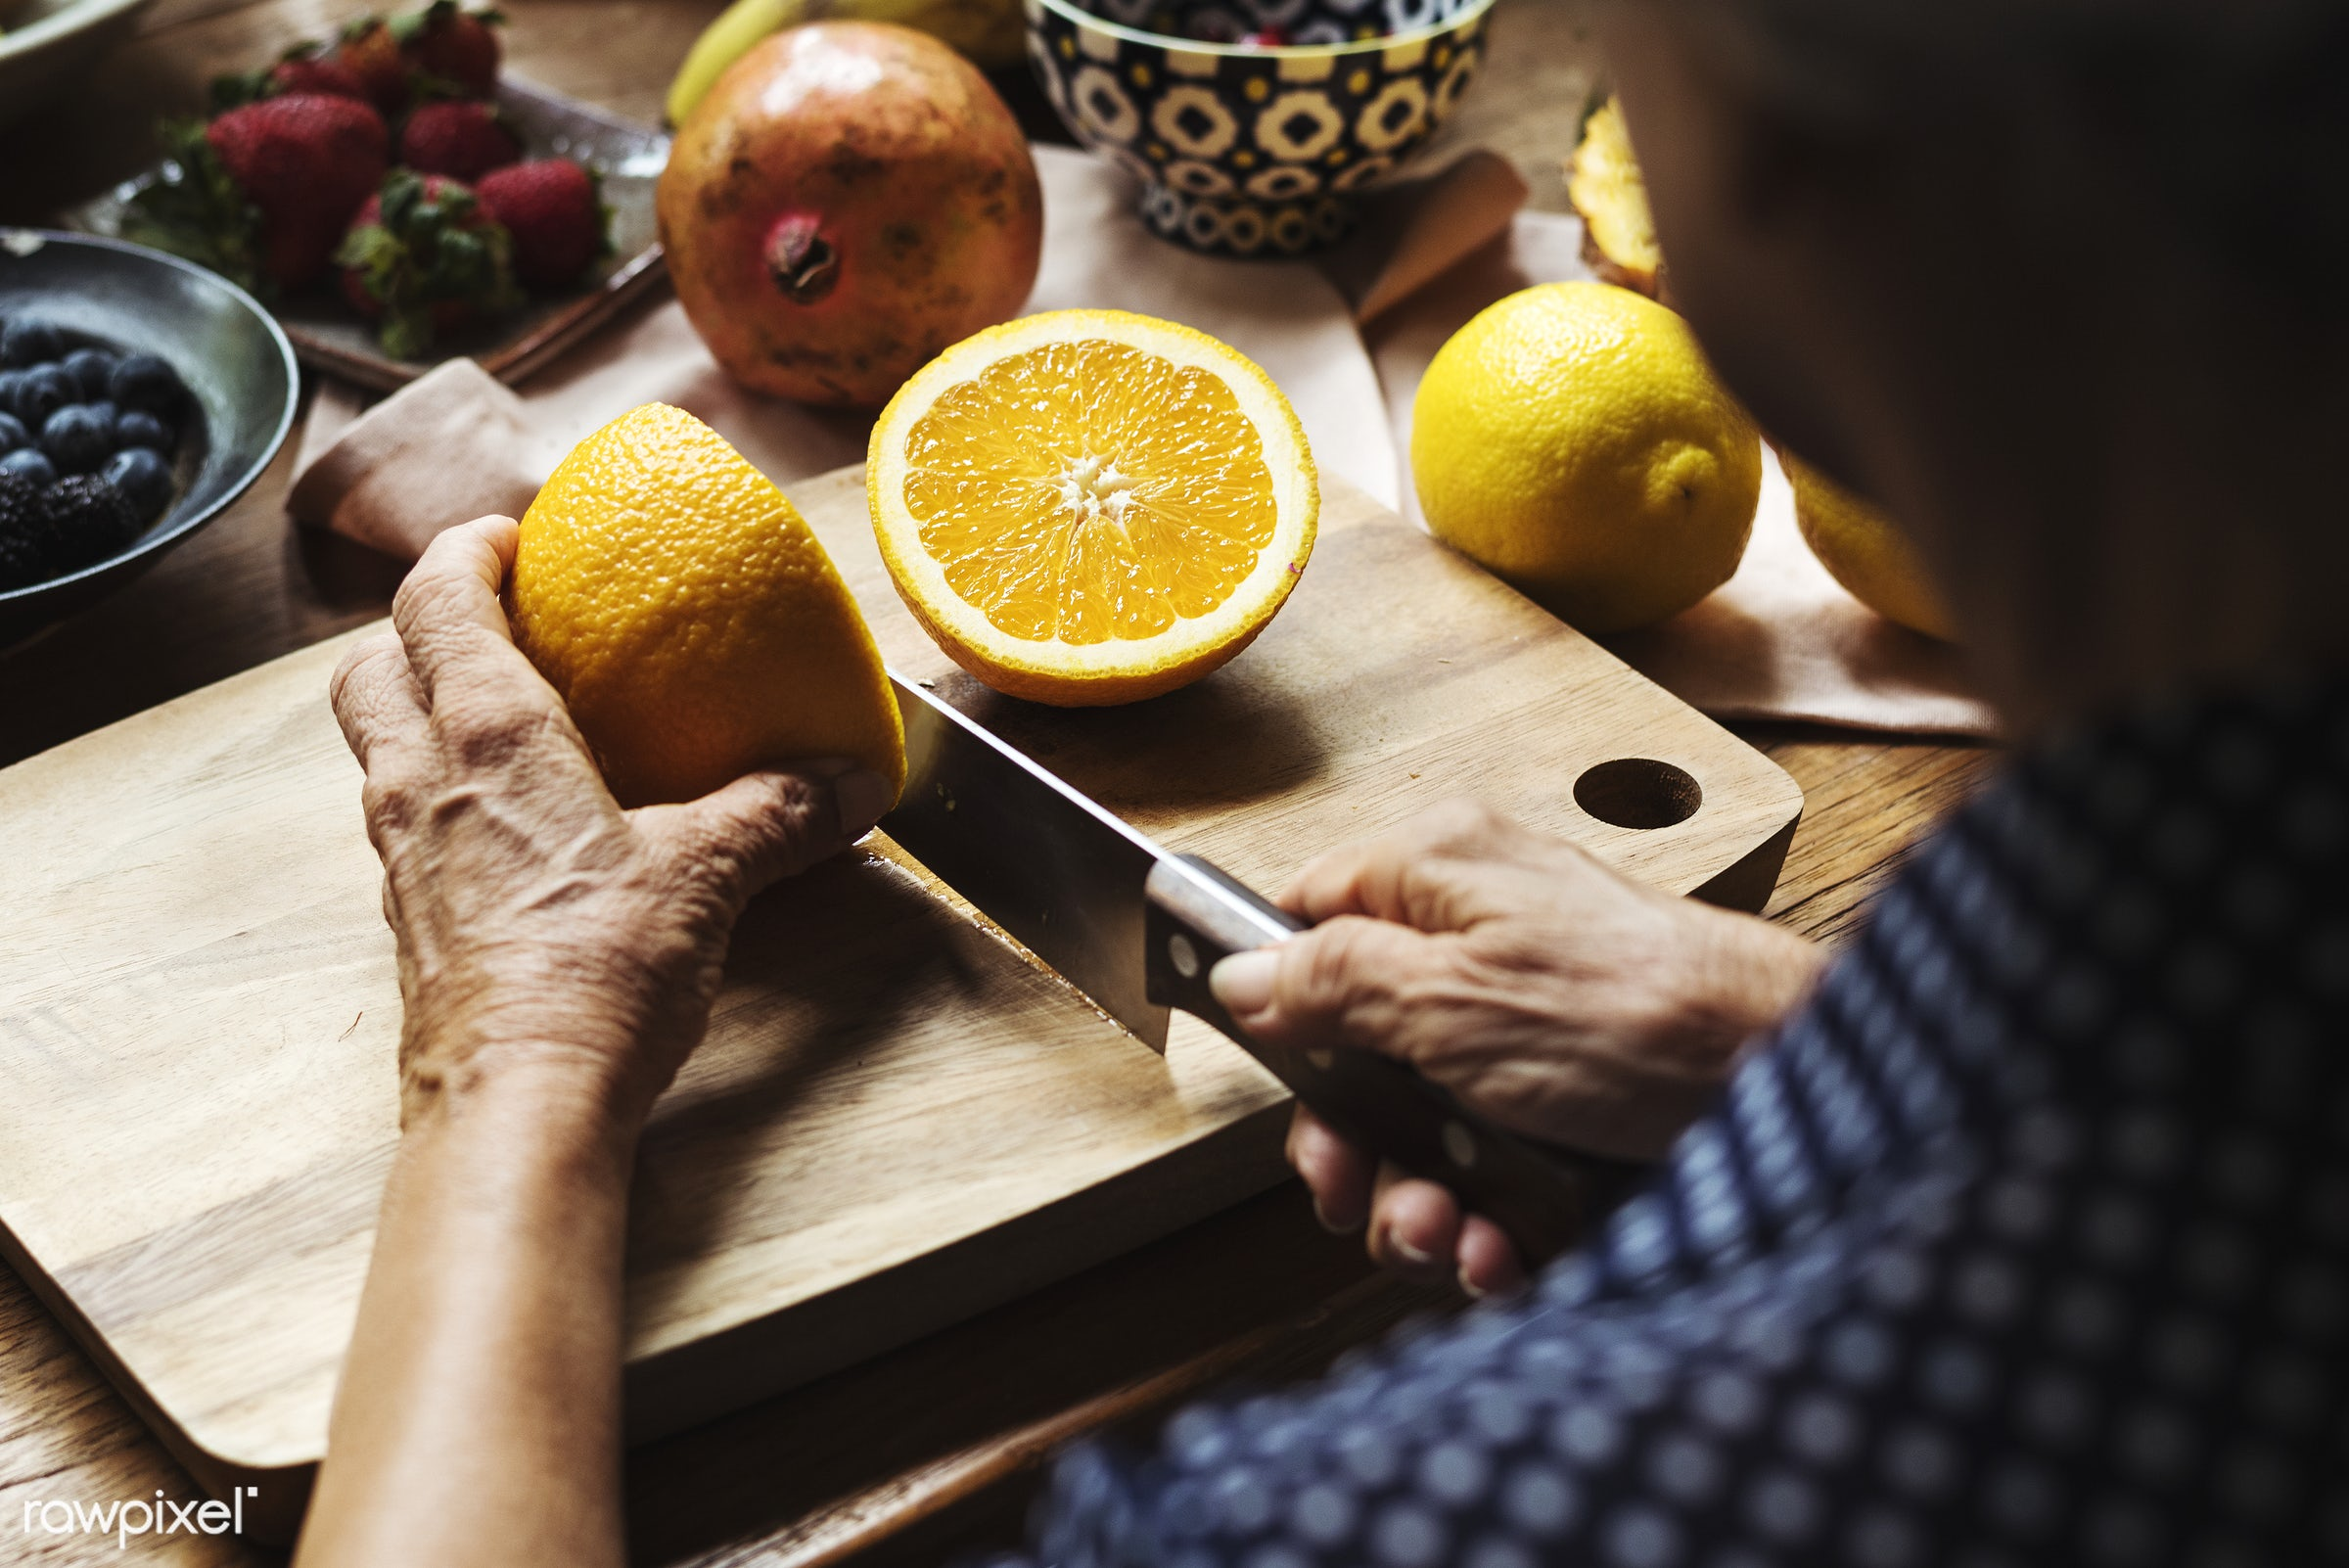 diverse, real, hands, fresh, cooking, various, closeup, meal, superfood, orange, cut board, chopping, fruits, prepare,...